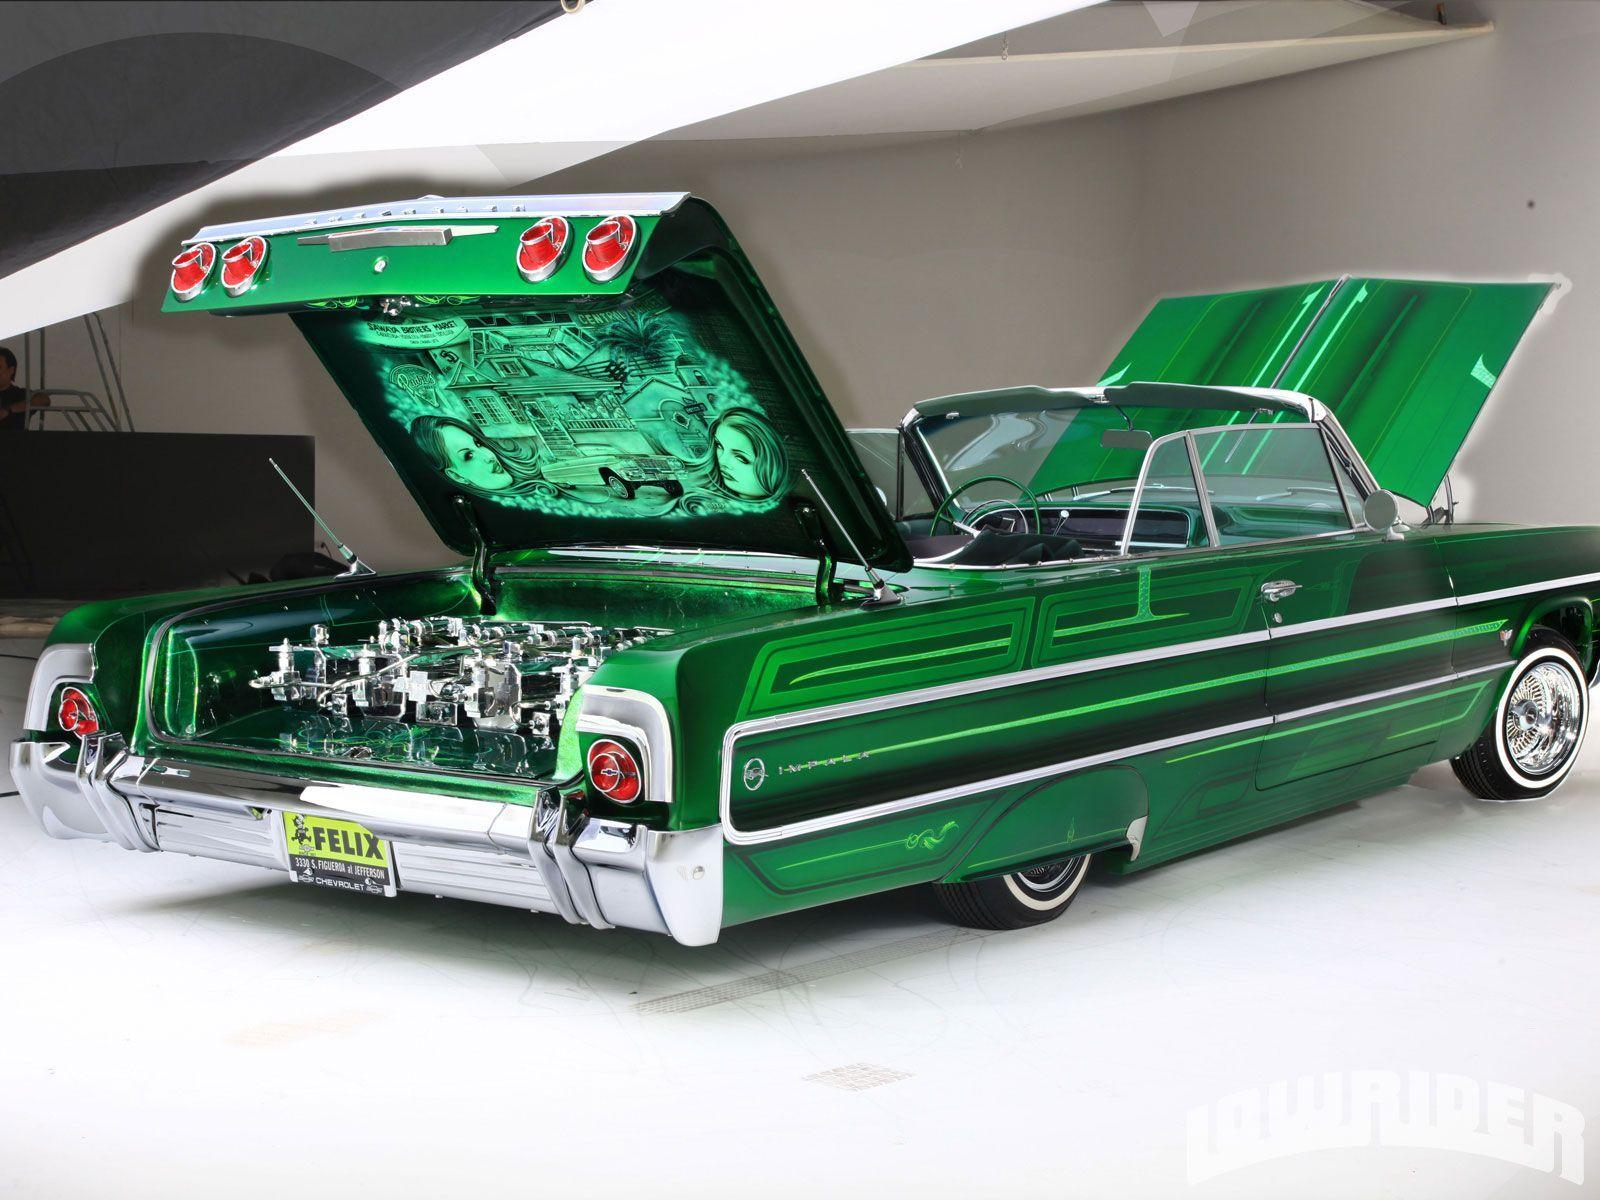 Pix For > 1964 Chevy Impala Lowrider Wallpaper | lowrider love ...